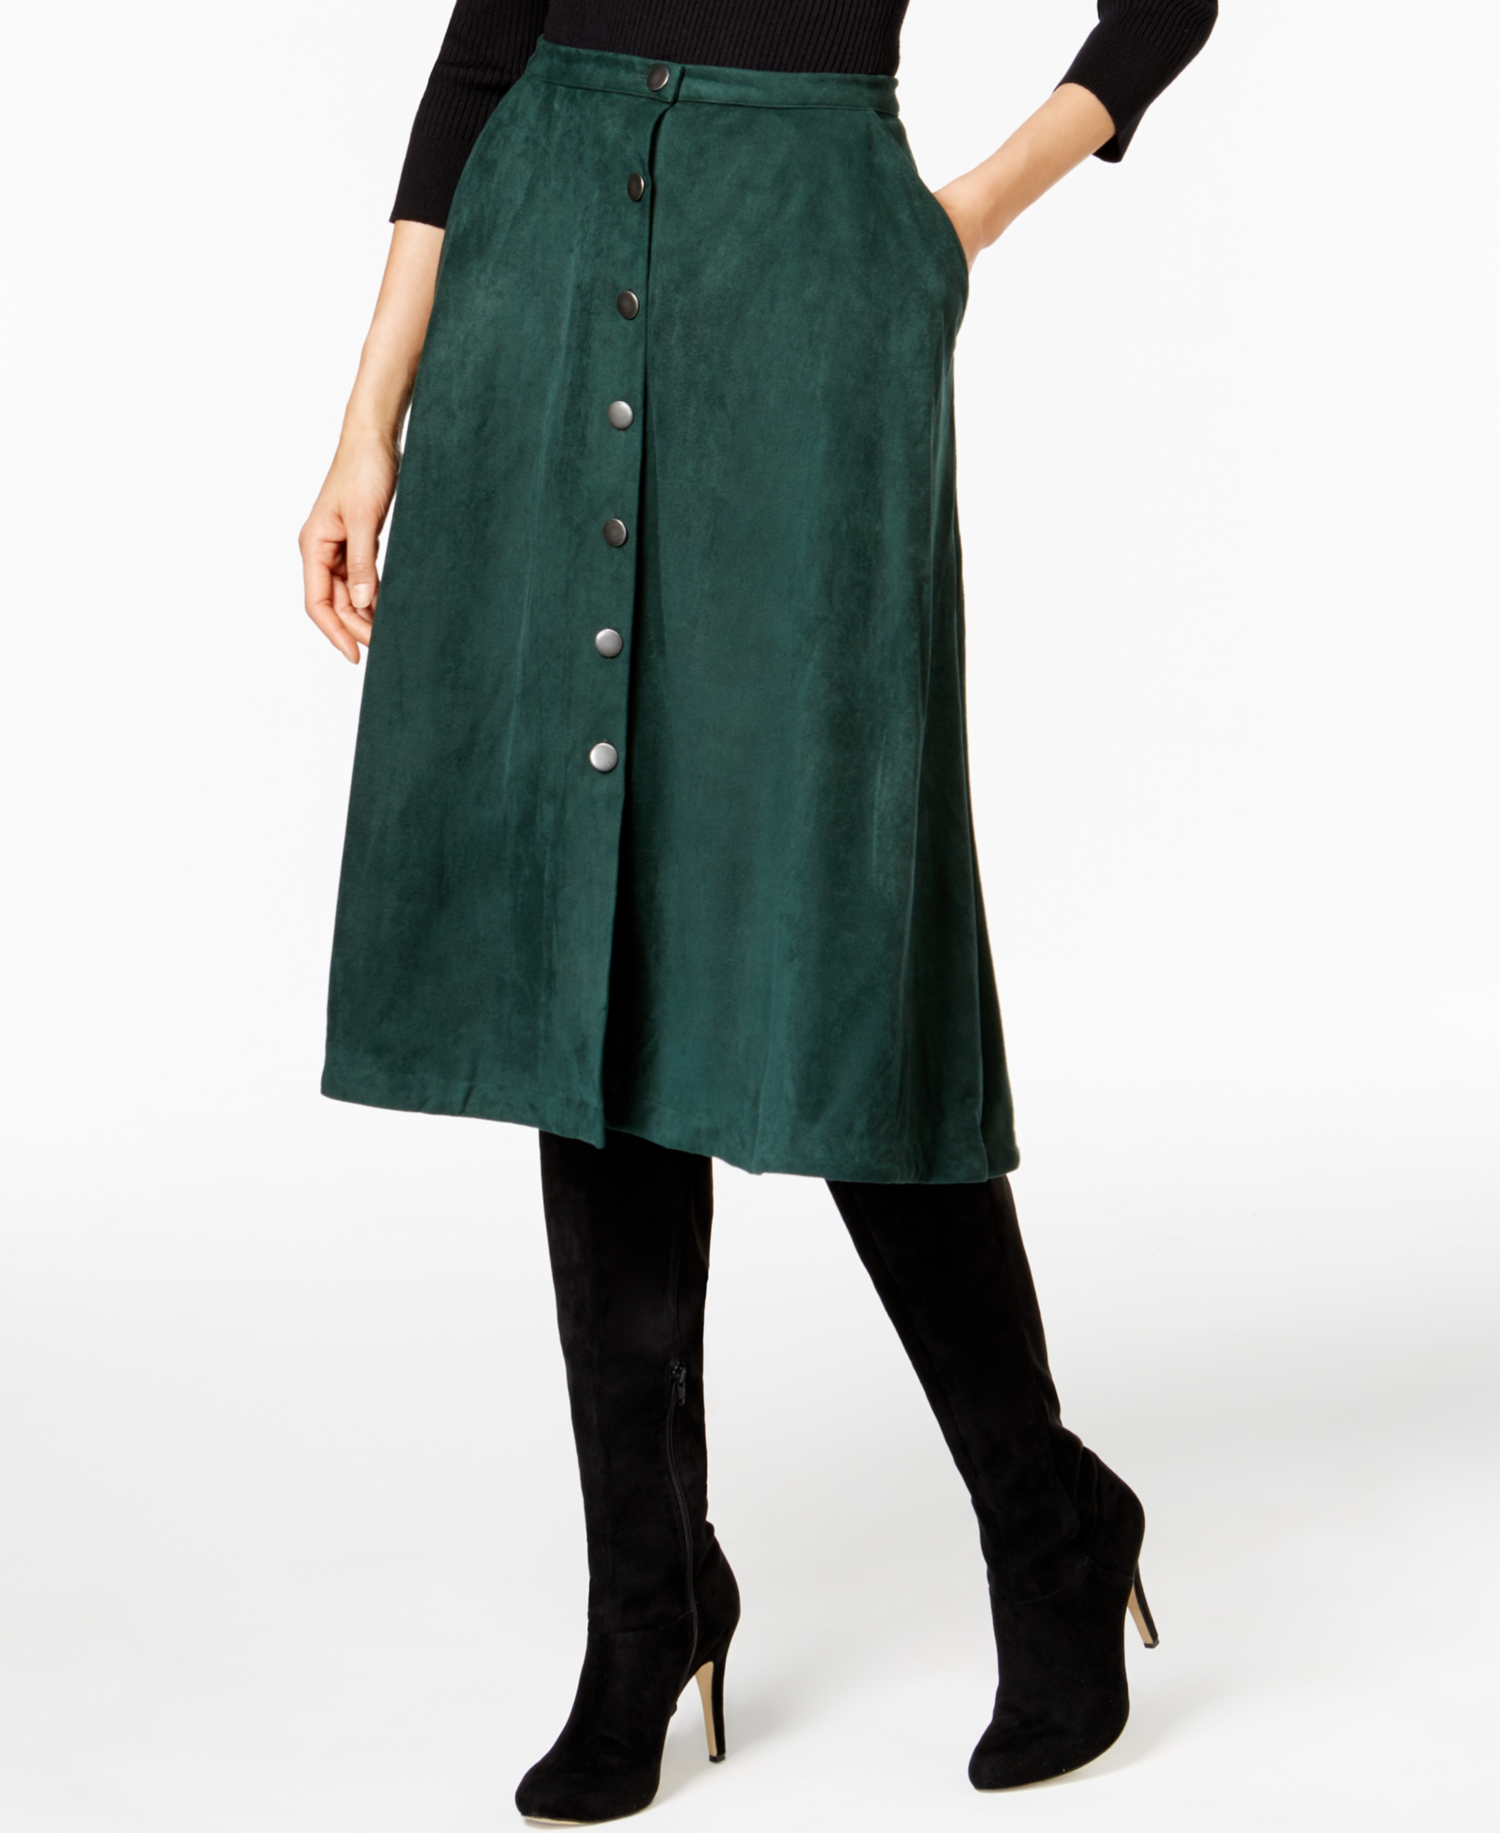 NY Collection Women/'s Faux-Suede A-Line Skirt